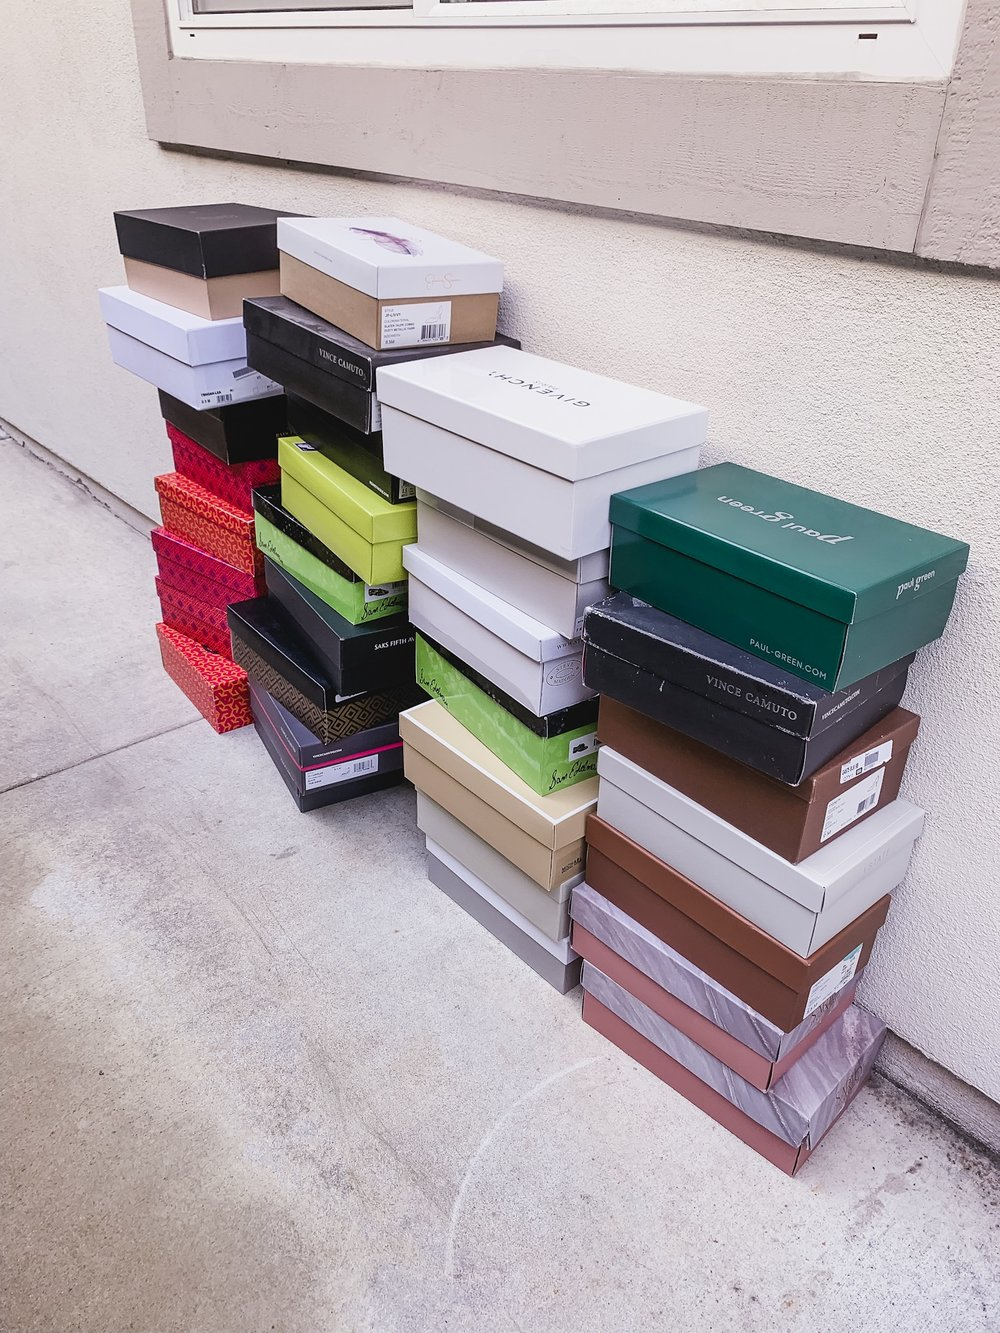 Capacity - 30 pairs of shoes from these boxes found a home